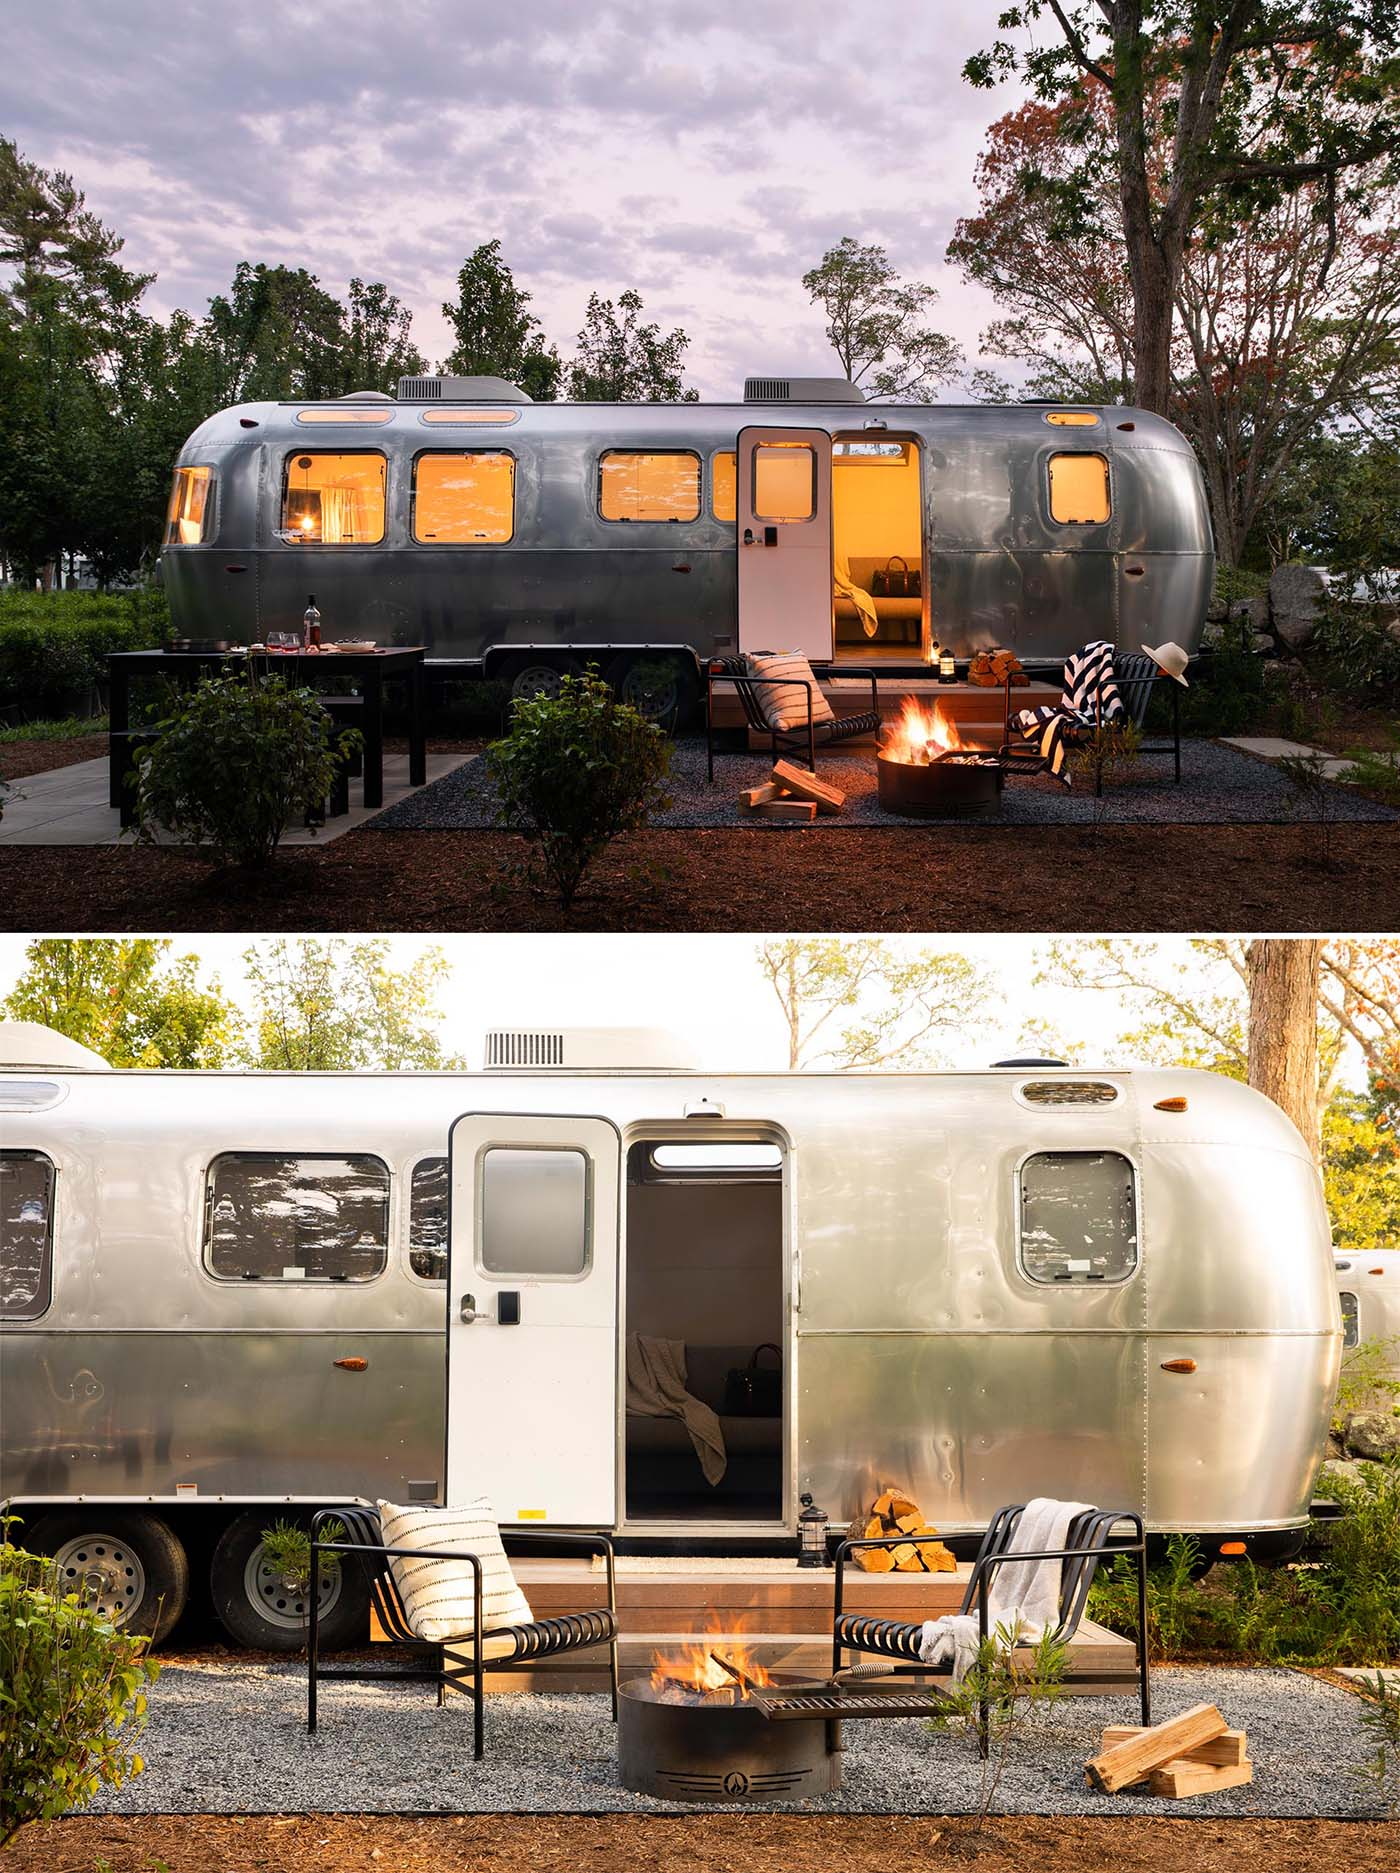 A remodeled Airstream trailer with a dedicated space for outdoor dining, and a small fire pit with a couple of chairs.